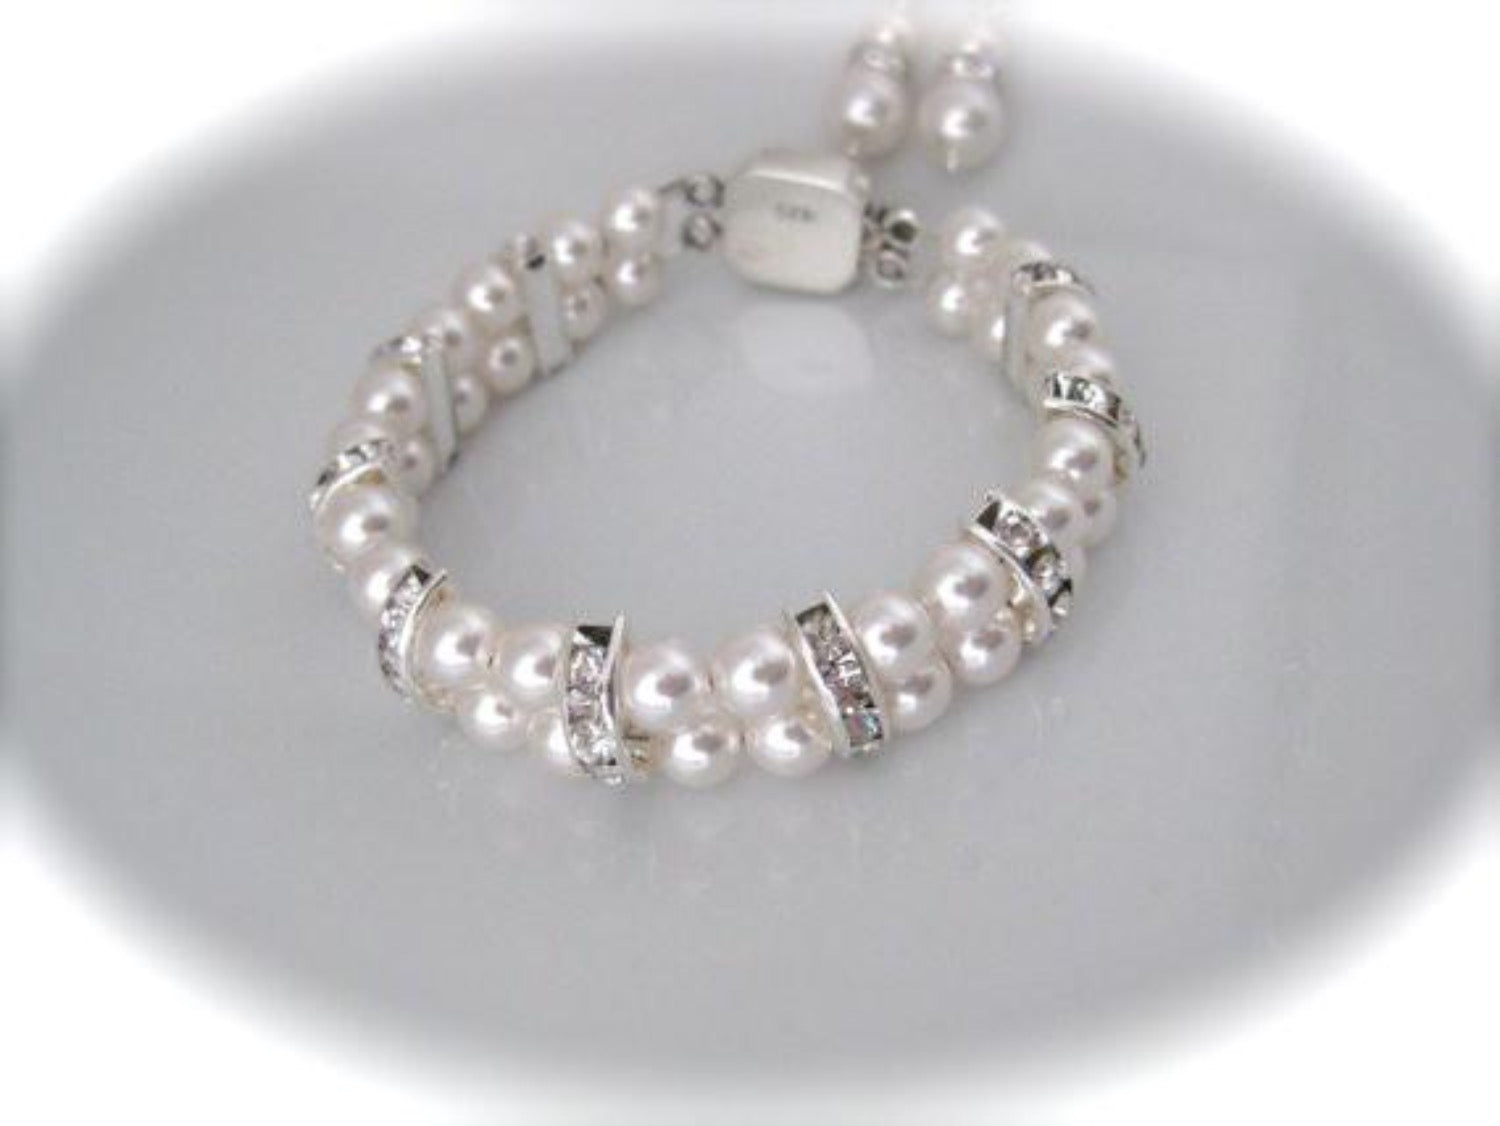 Bridal jewelry pearl and rhinestone bracelet and earrings - Clairesbridal - 3